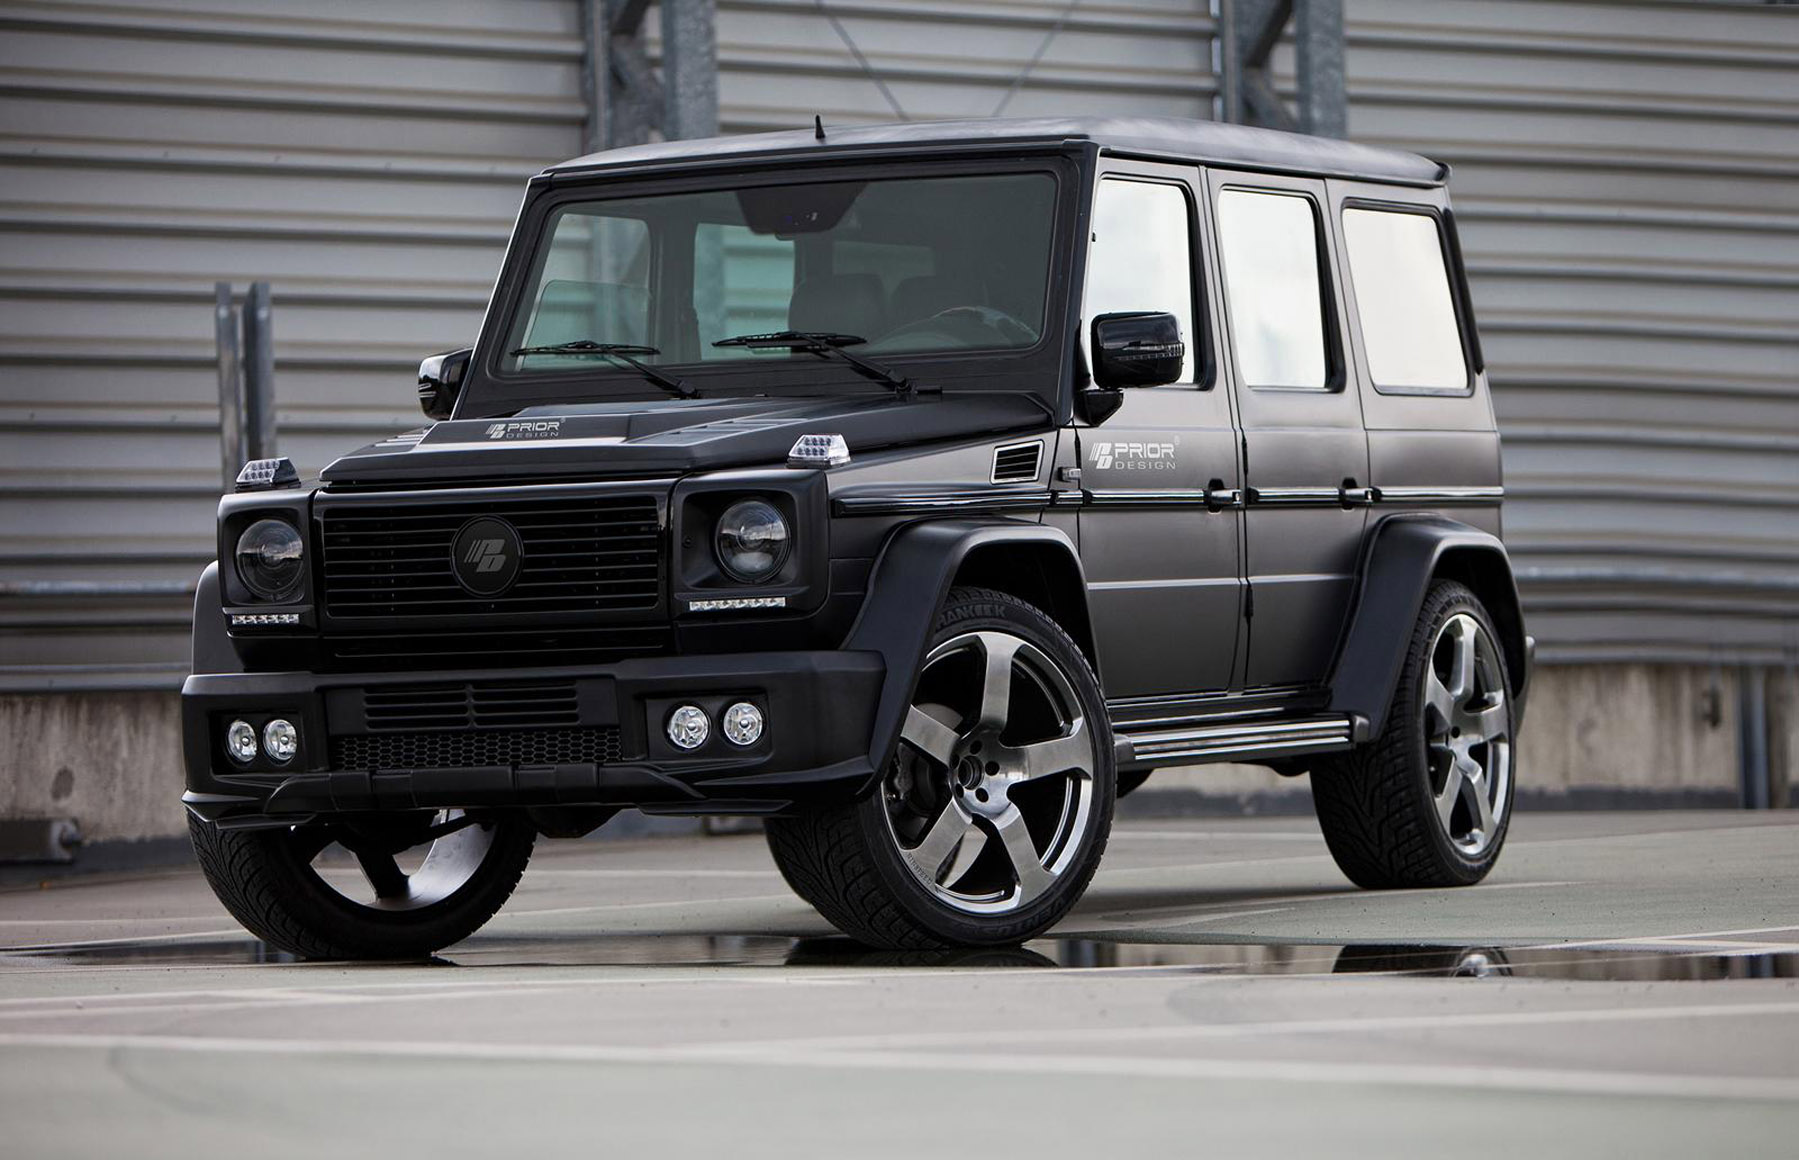 Image gallery mercedes benz g for Mercedes benz g class suv price